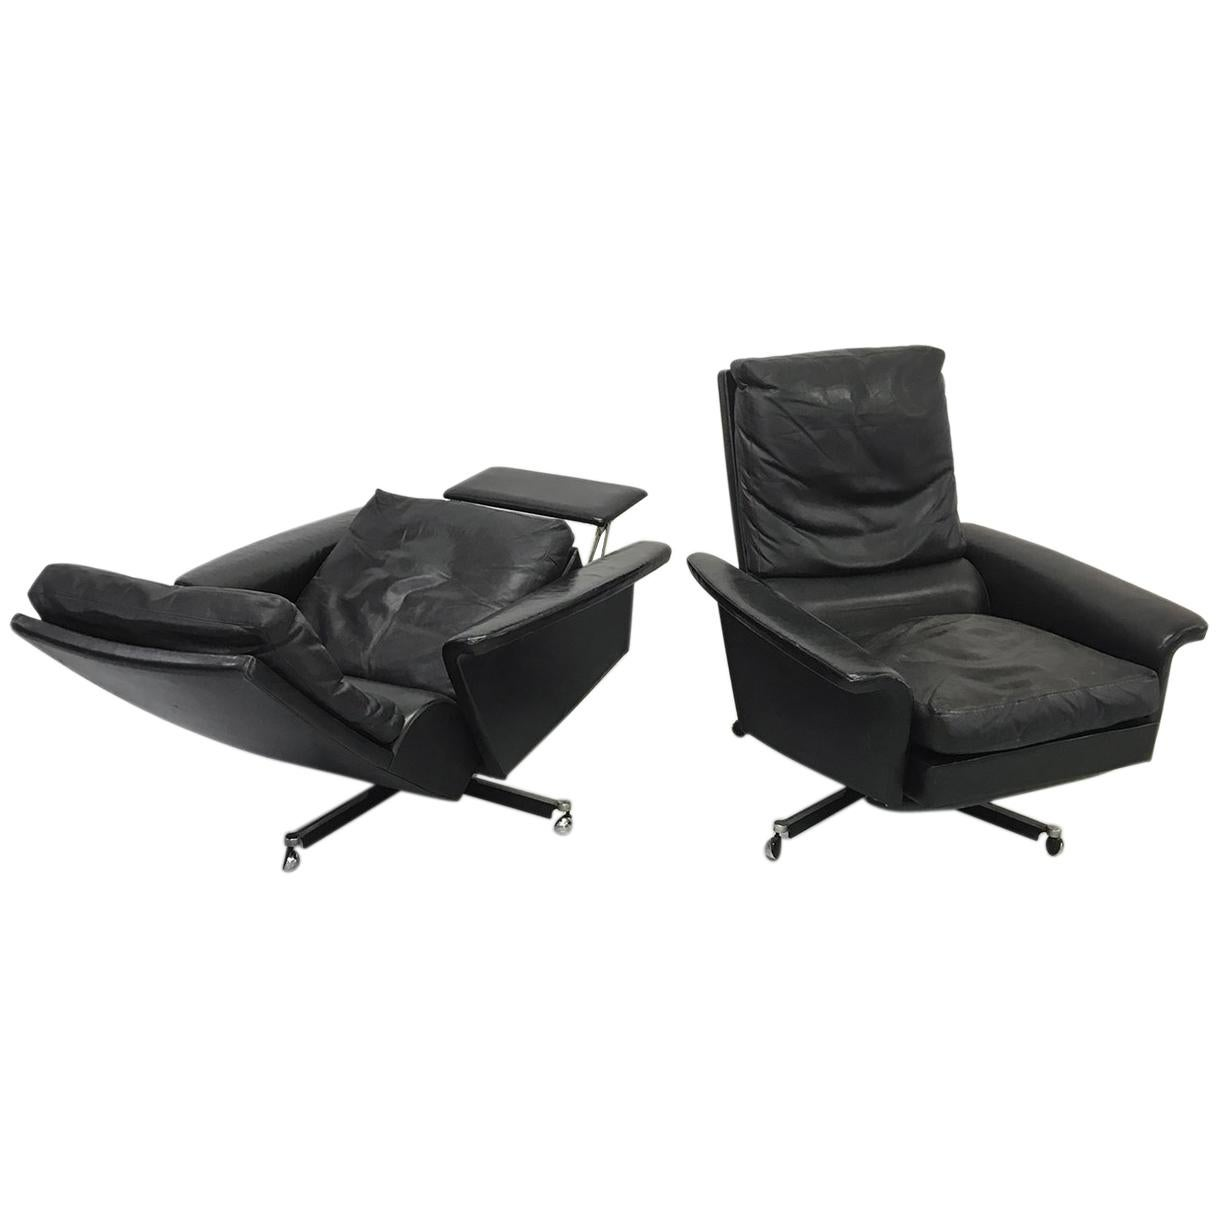 Leather Reclining Chairs Pair Of 1960s Mid Century Modern Black Leather Reclining Lay Z Boy Lounge Chairs